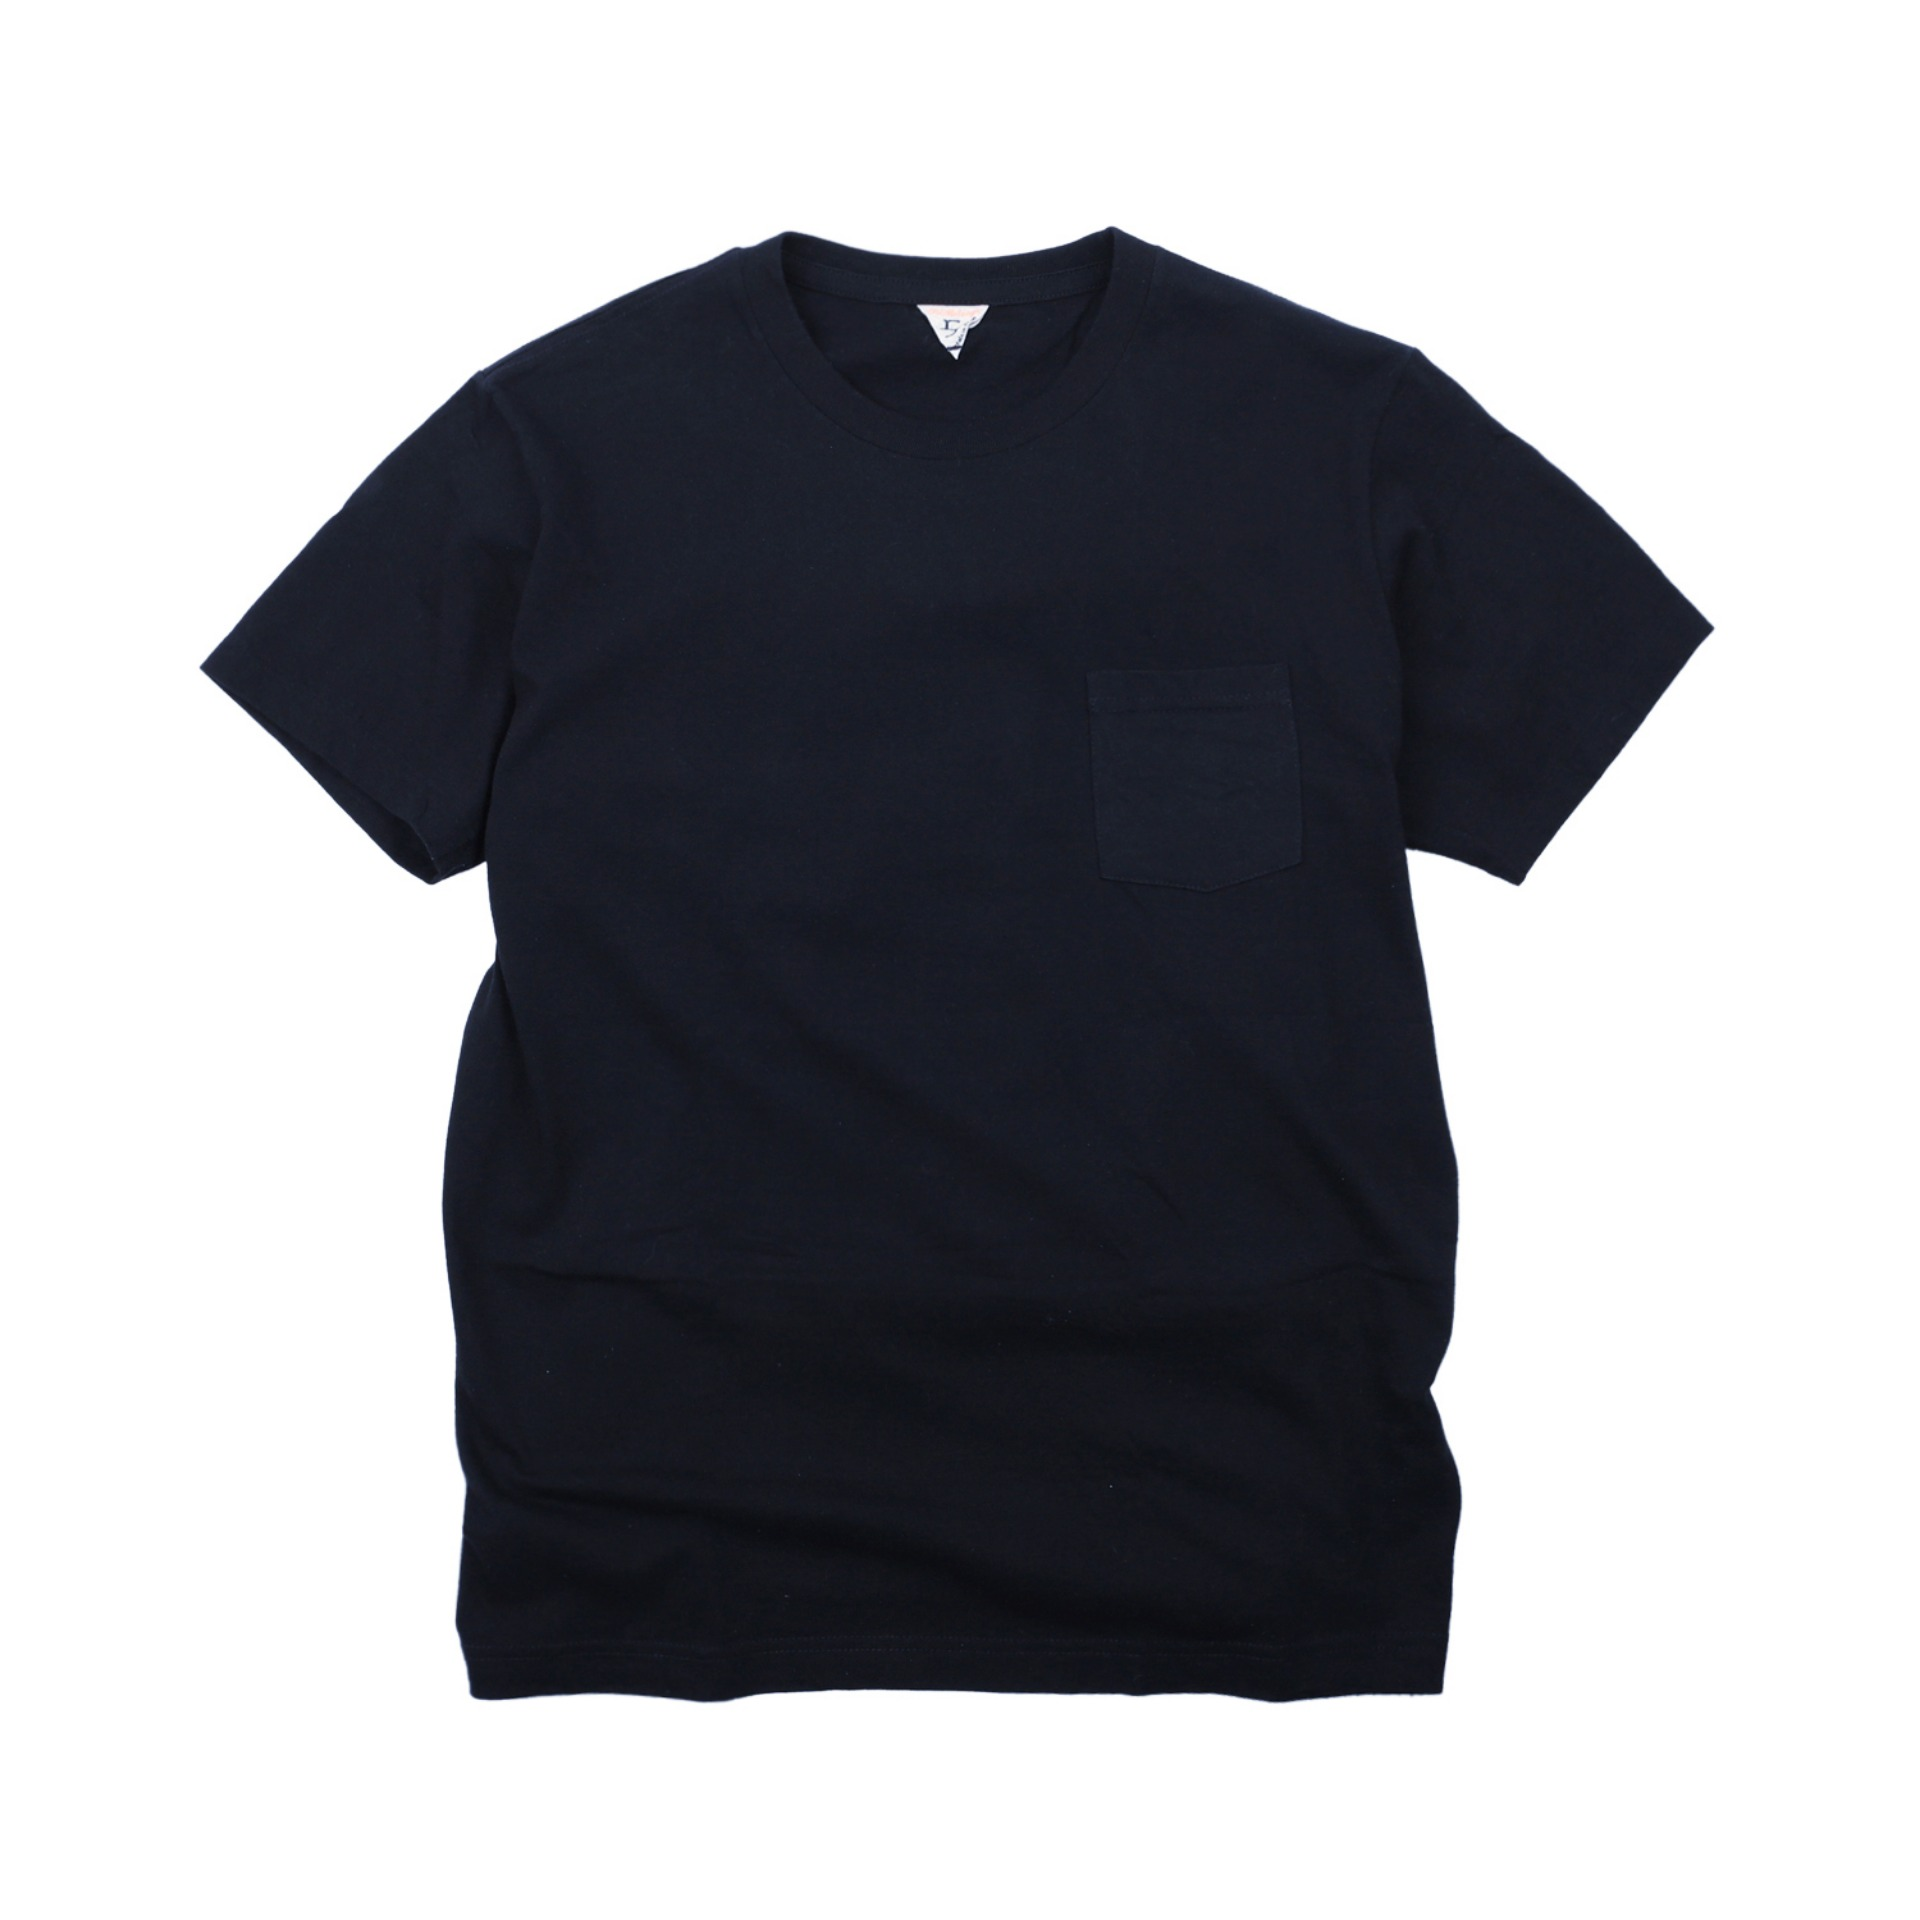 [SUNNY]Pocket T-shirtShort Sleeve T-Shirt(Deep Navy)